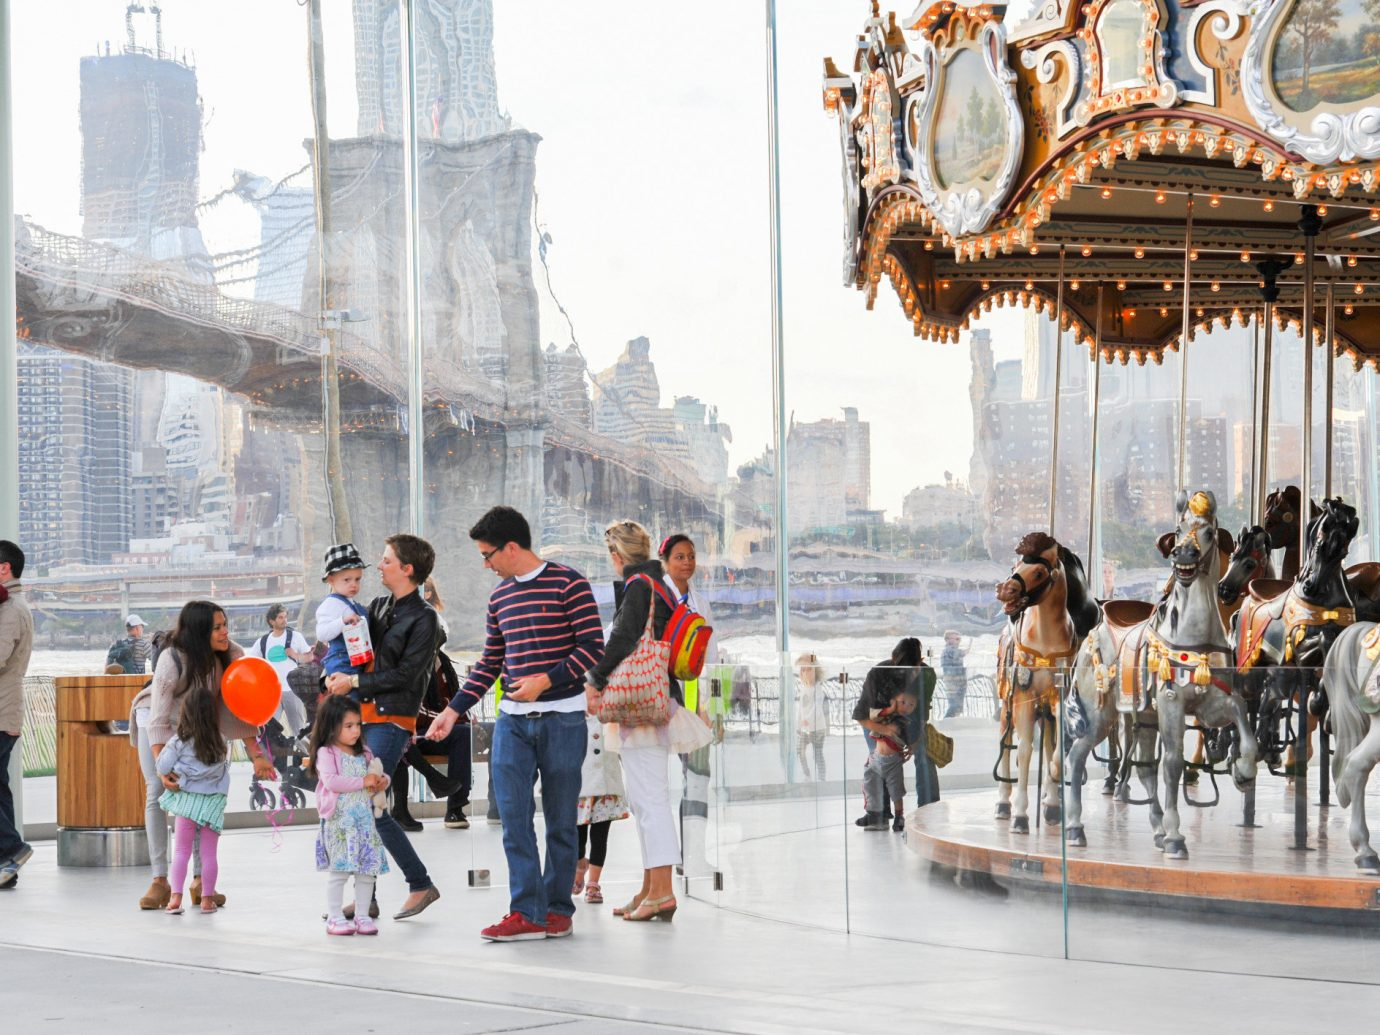 Trip Ideas outdoor person crowd amusement park park tourism outdoor recreation amusement ride plaza group pedestrian ice rink several